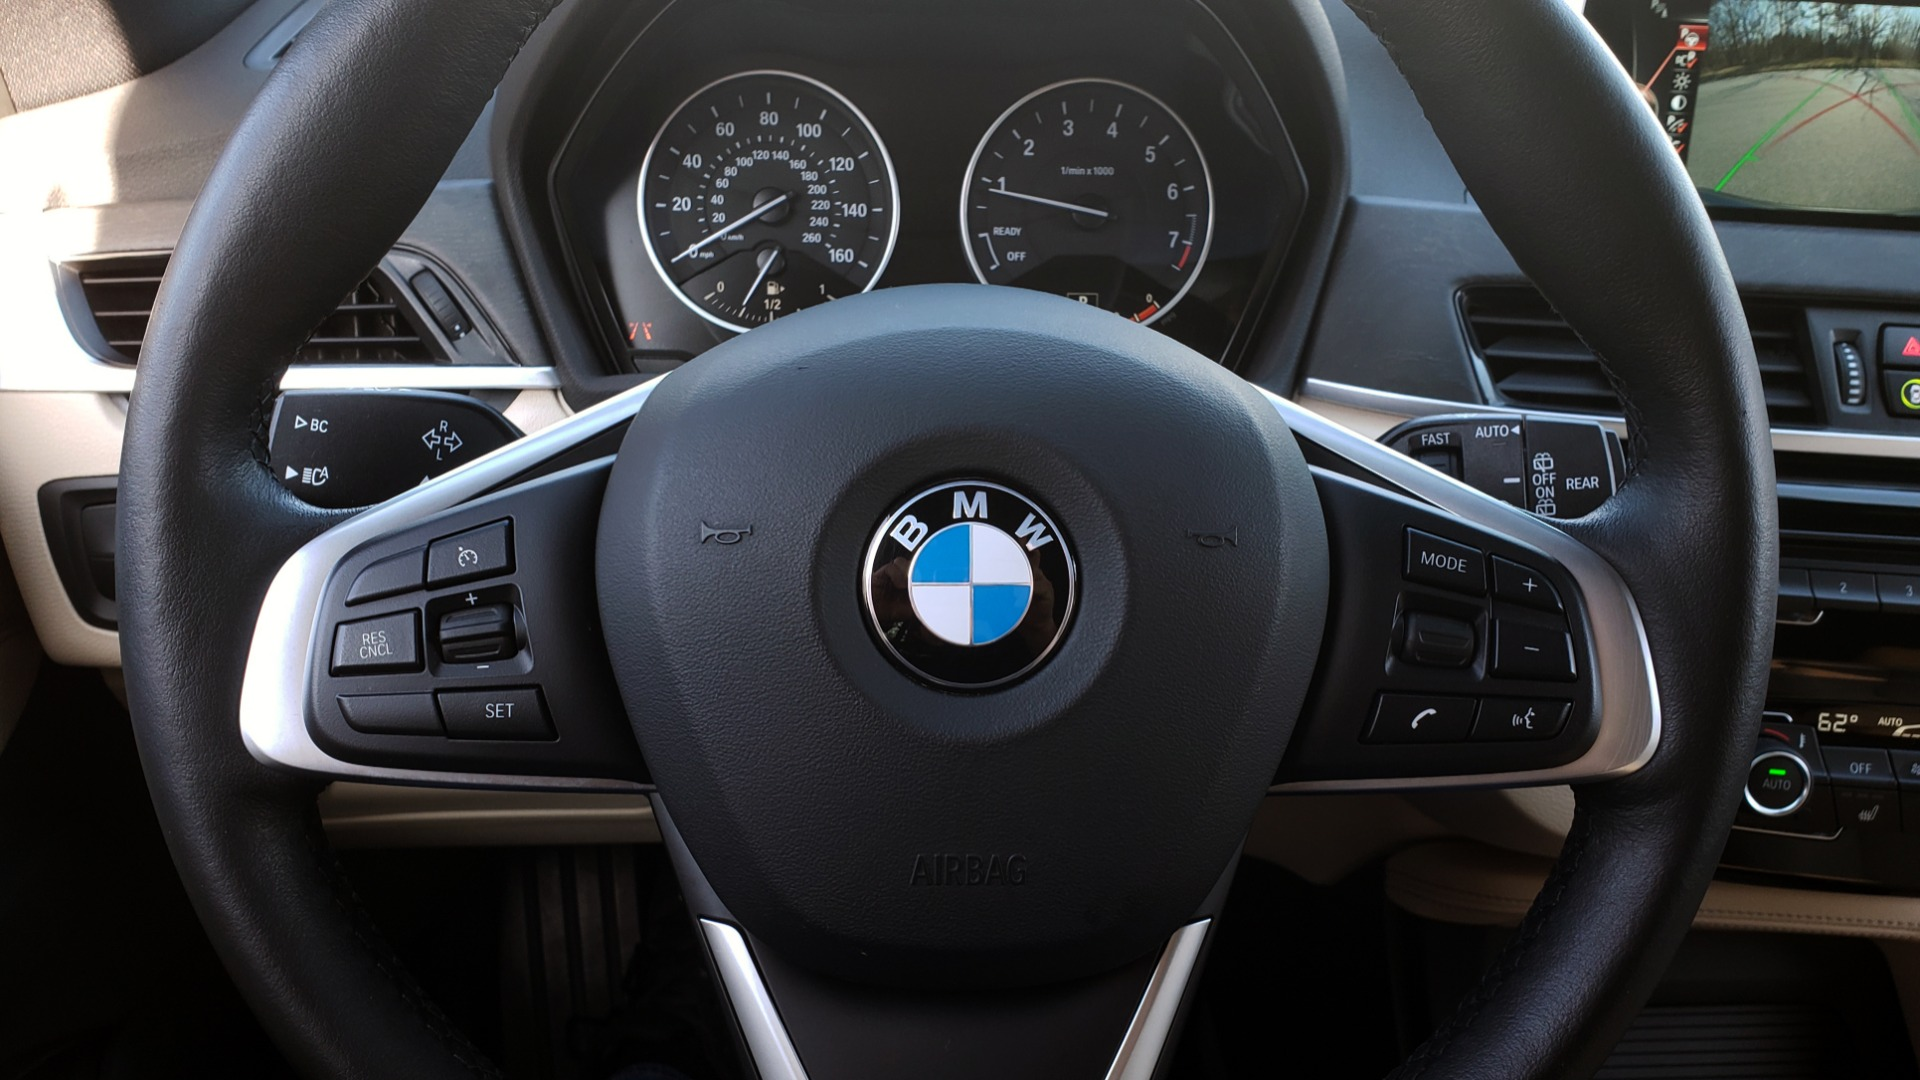 Used 2017 BMW X1 XDRIVE28I / PREM / TECH / DRVR ASST PLUS / COLD WTHR / REARVIEW for sale $26,995 at Formula Imports in Charlotte NC 28227 36